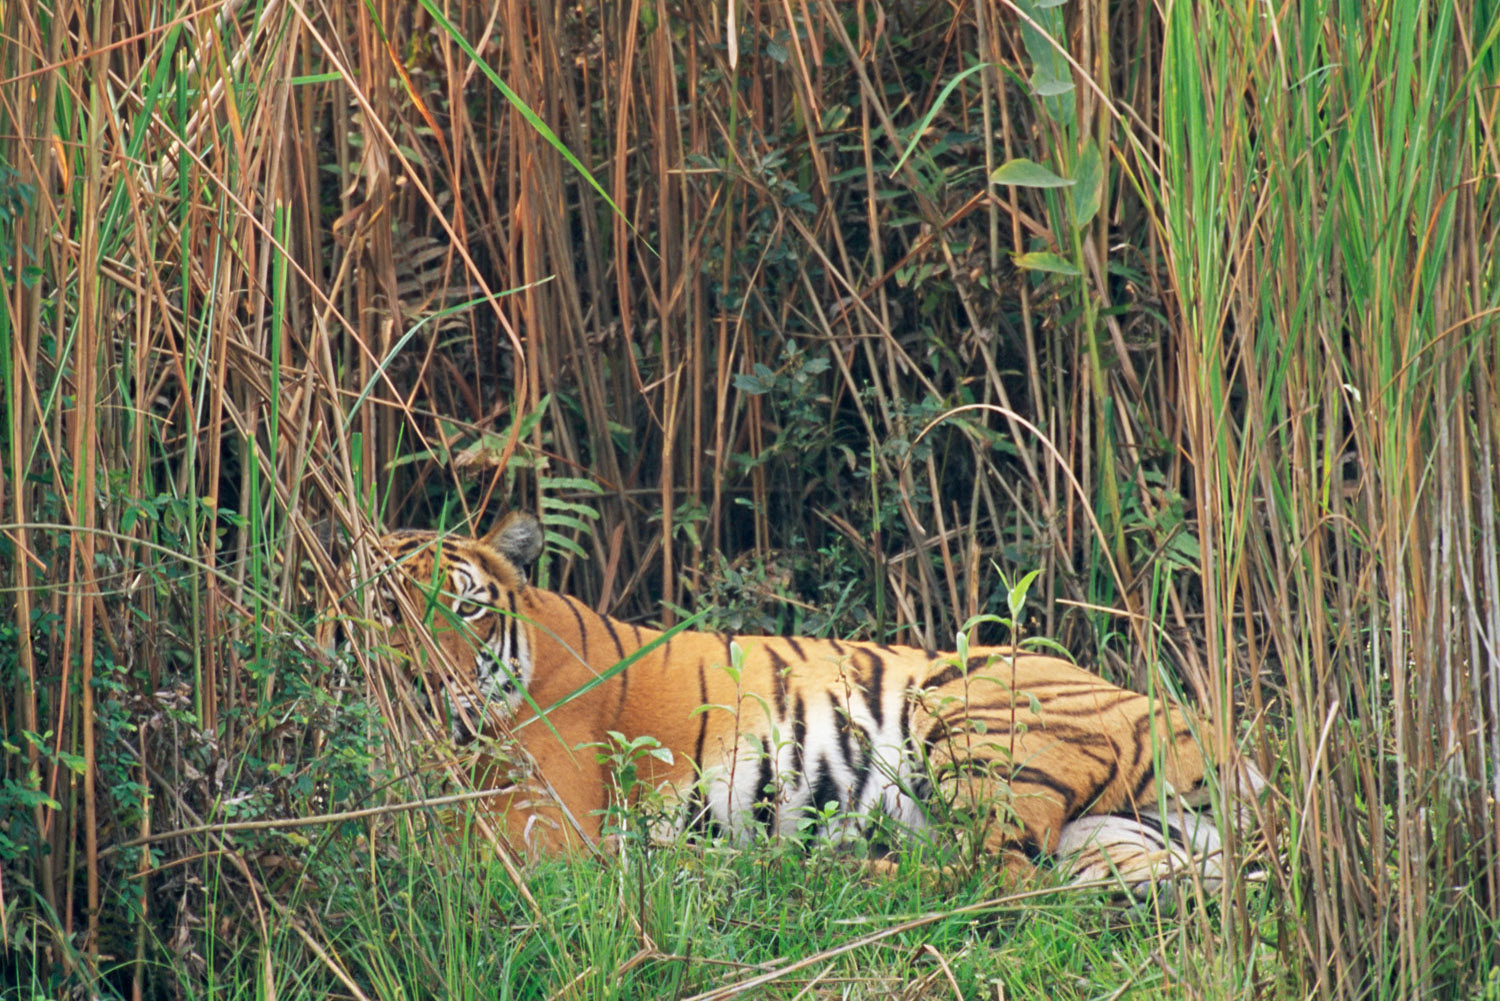 Bengal tiger resting in 'elephant' grasses, Kaziranga National Park, Assam, India